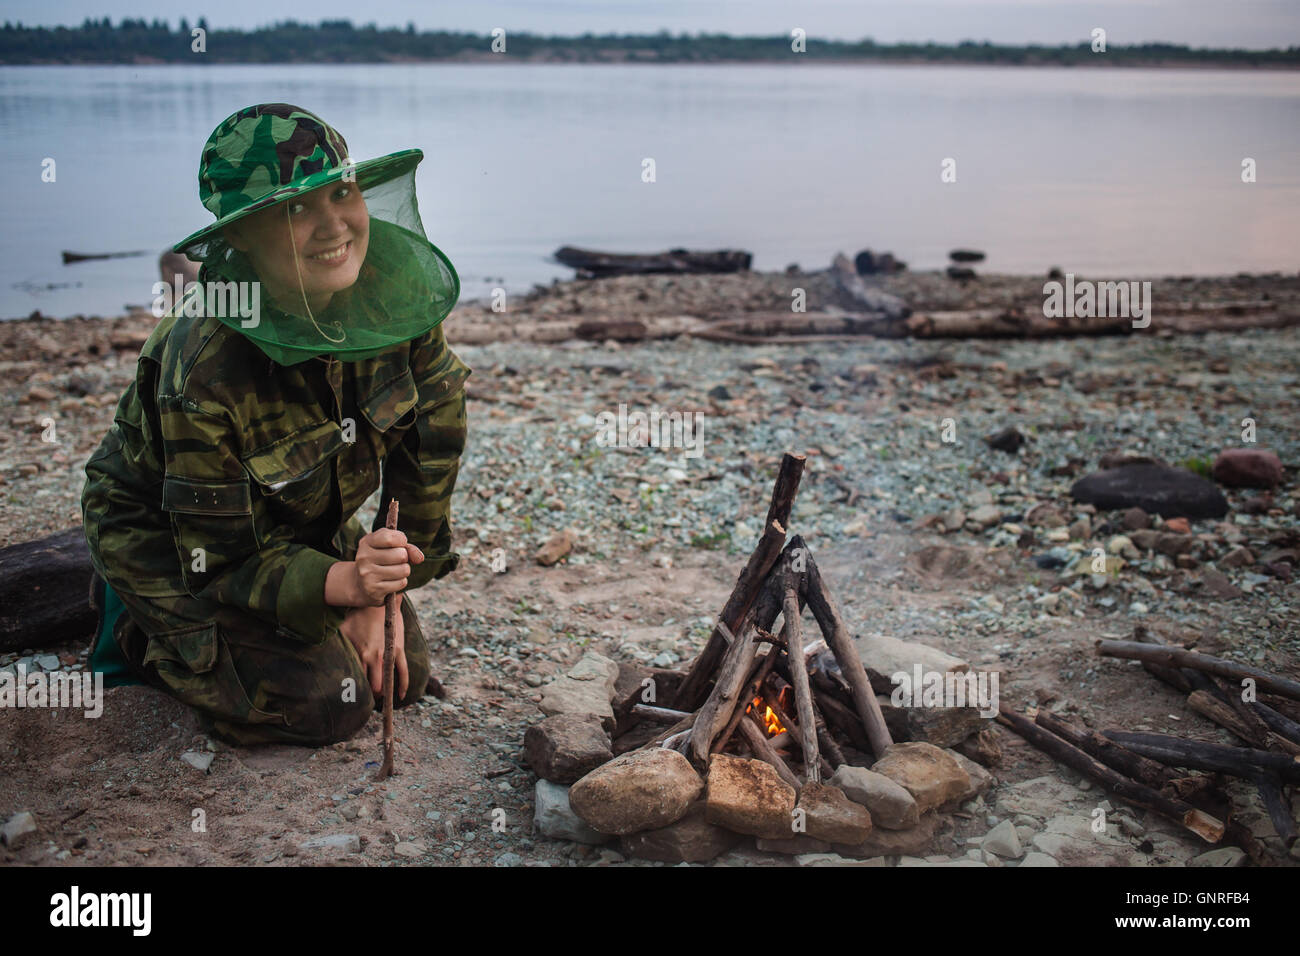 Girl hiker smiling and looking to camera around campfire on river shore at evening - Stock Image